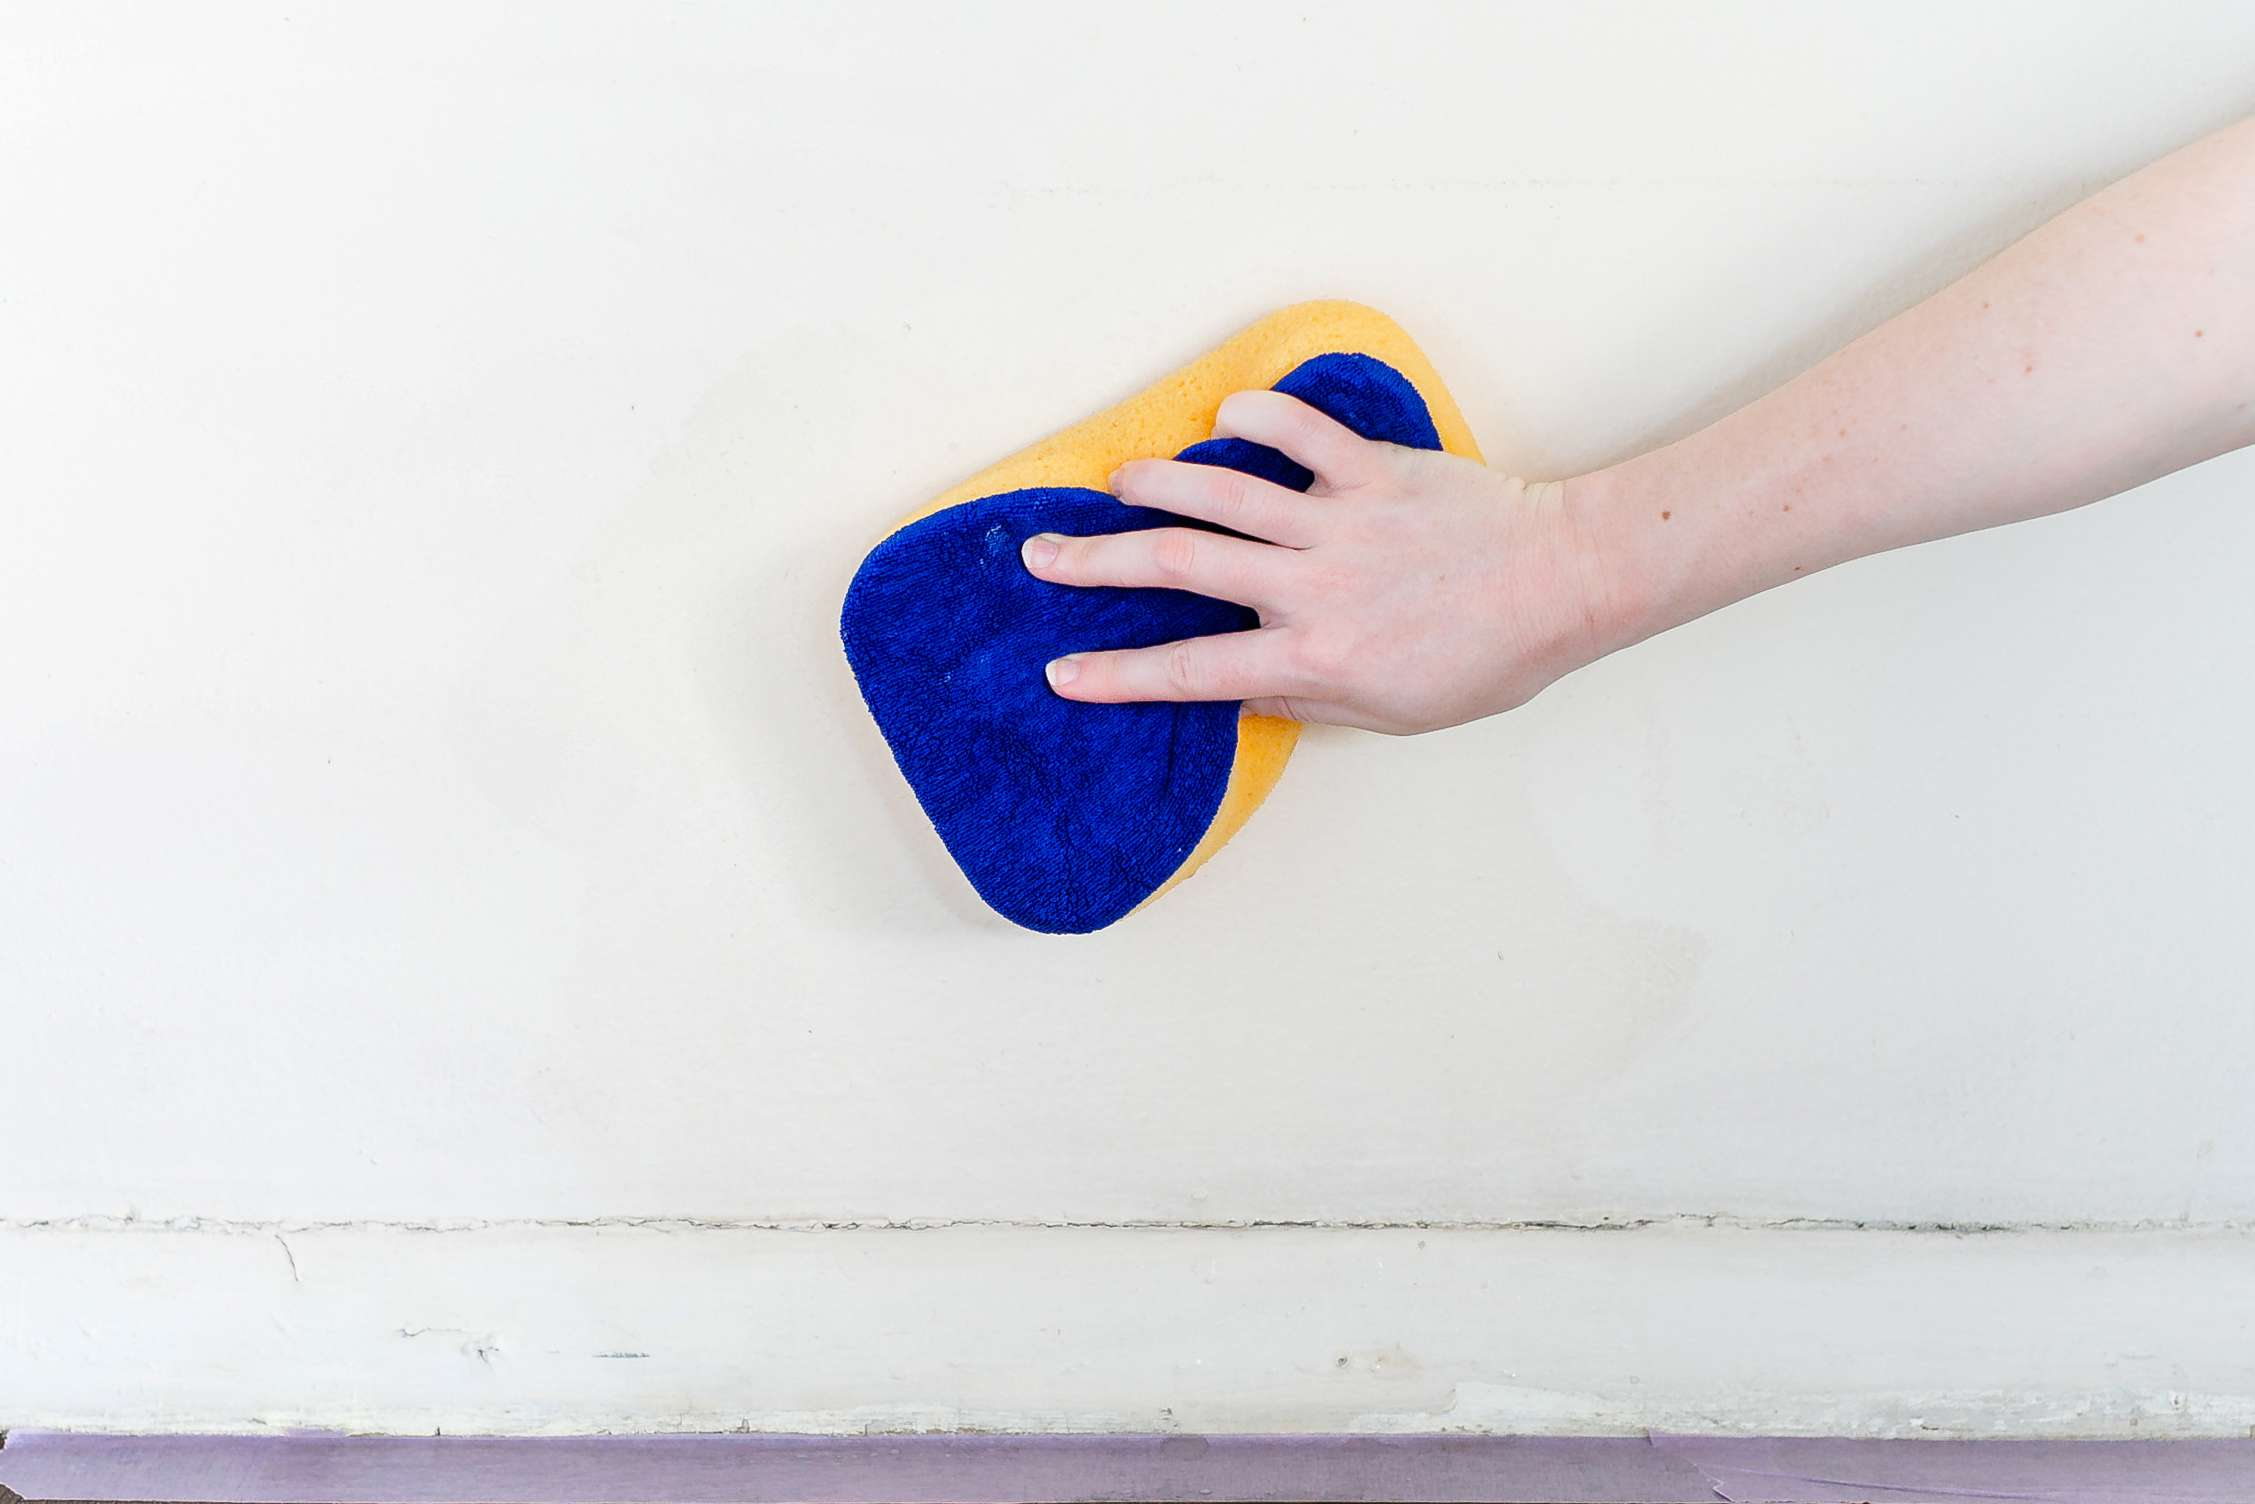 washing walls with a damp sponge